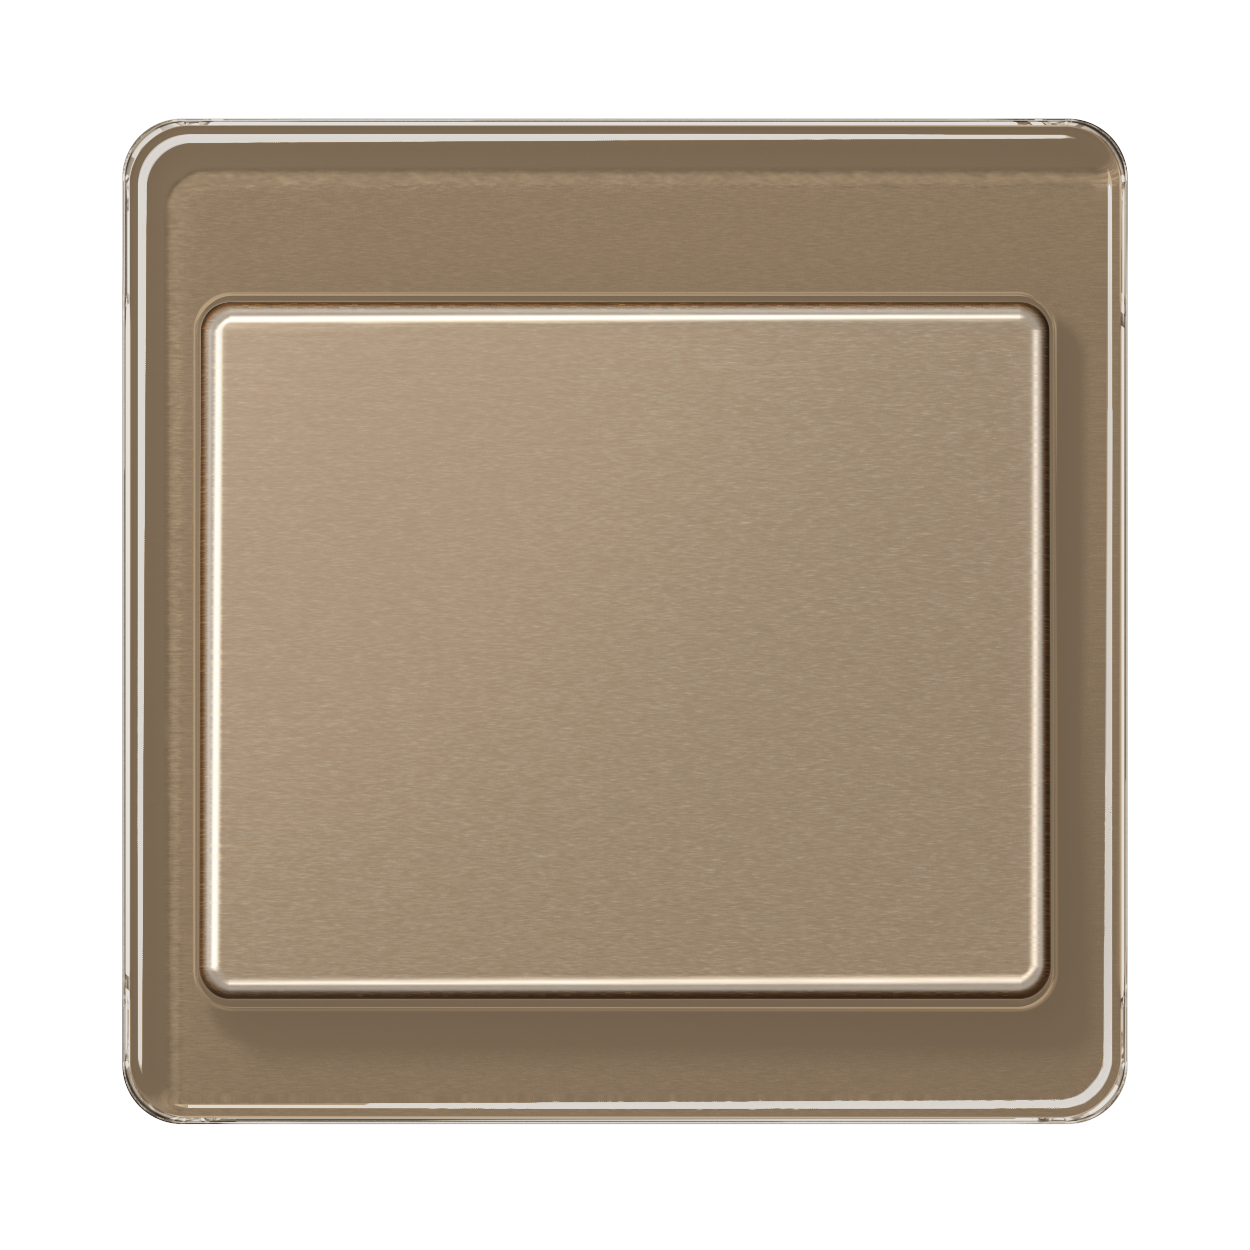 JUNG_SL500_gold-bronze_switch